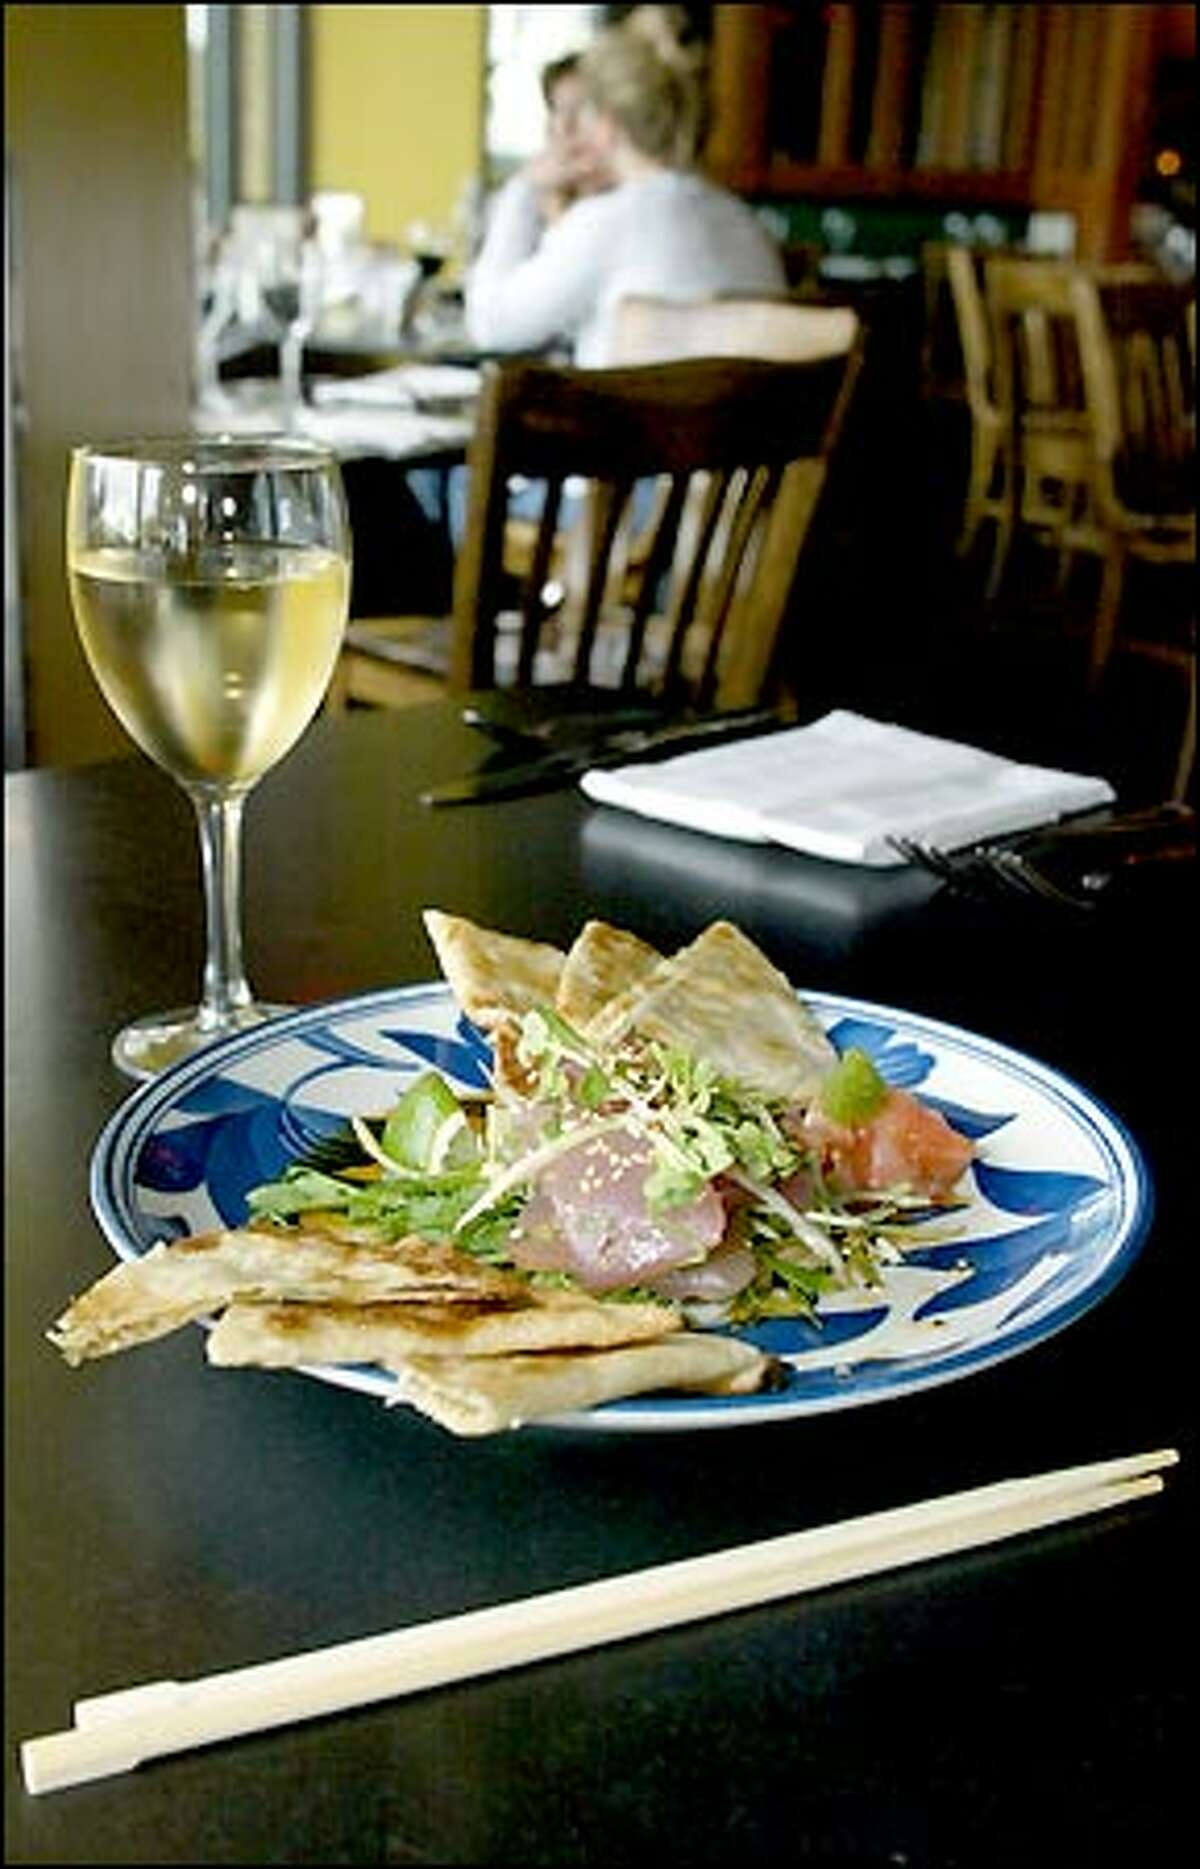 One of the better bets at Etta's Seafood is owner Tom Douglas' tasty signature dish of tuna sashimi salad and green onion pancakes ($12).